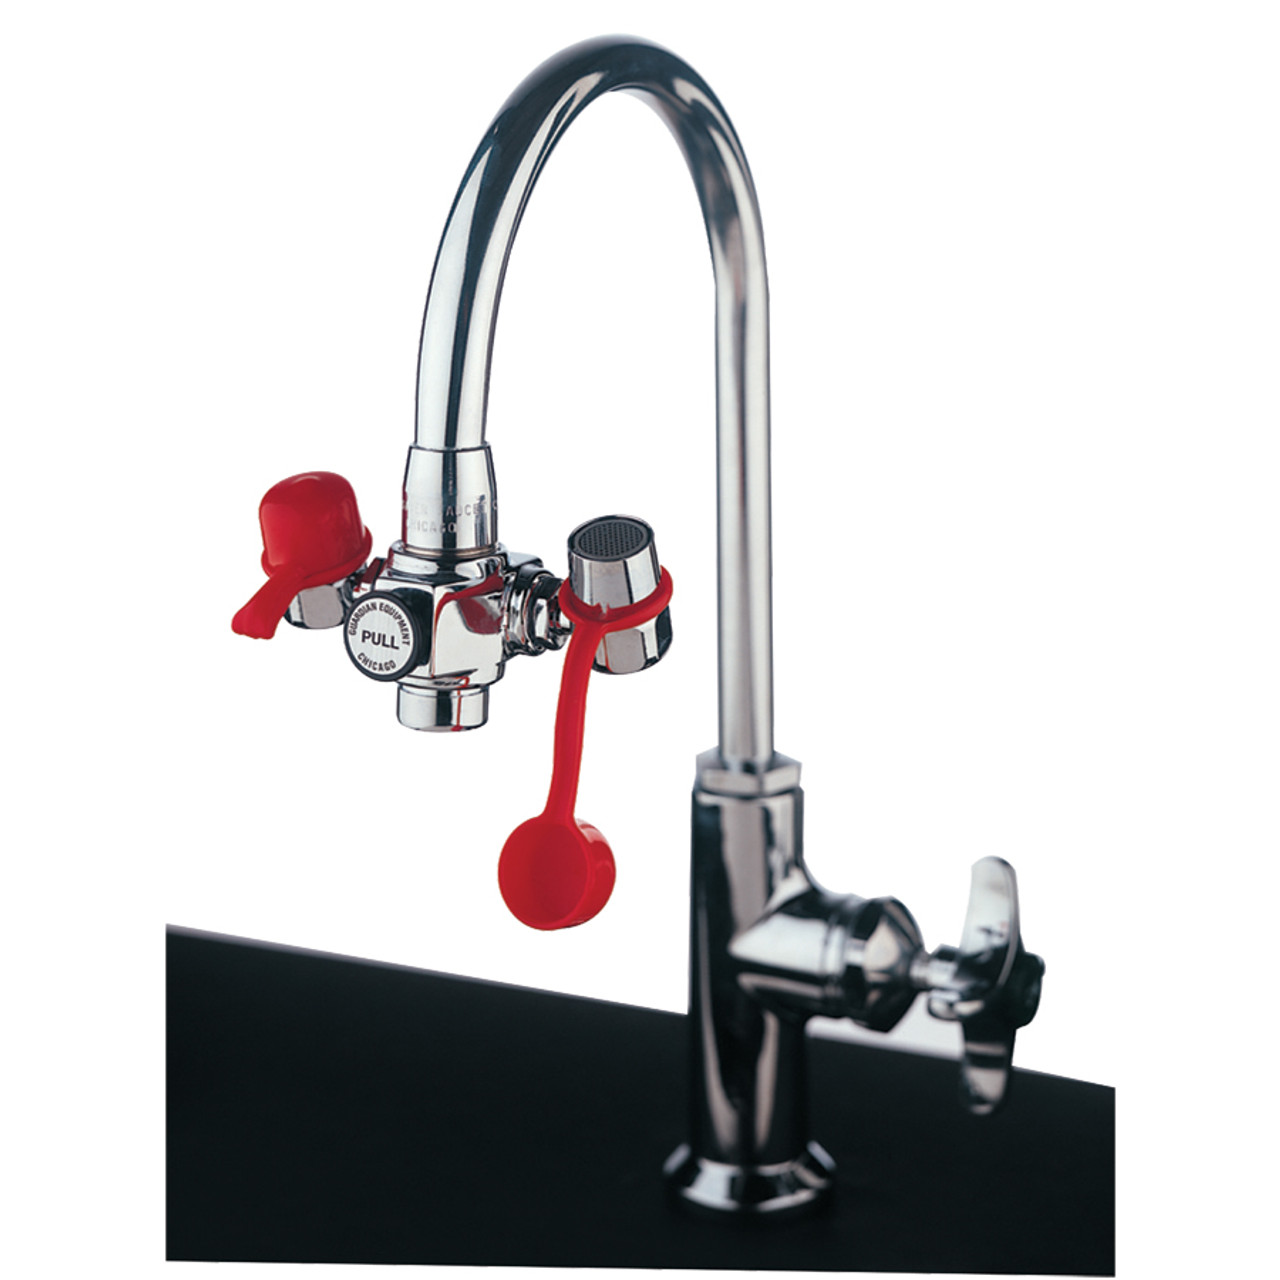 guardian g1100 faucet mounted eyewash with adjustable outlet heads